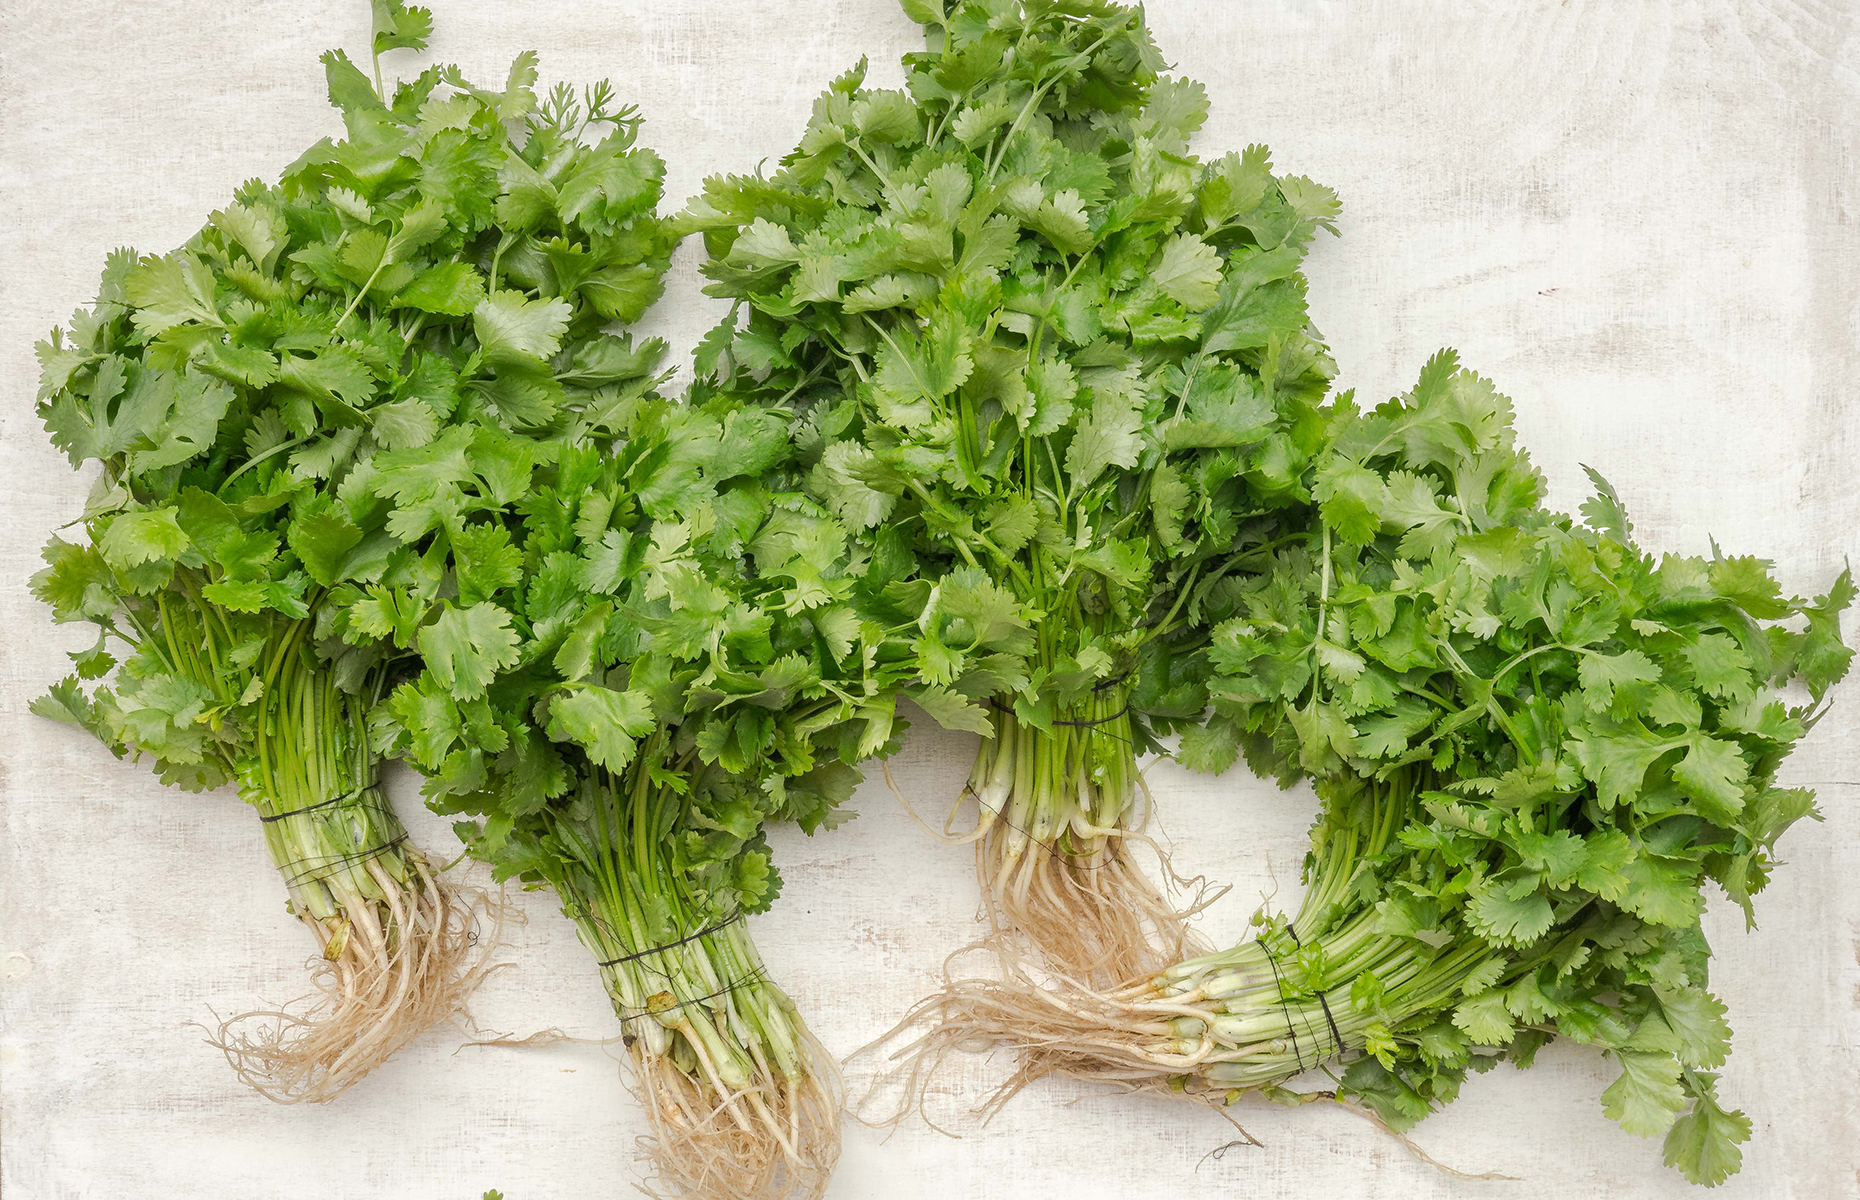 Bunches of fresh parsley (Image: Tomasz Olszewski/Unsplash)